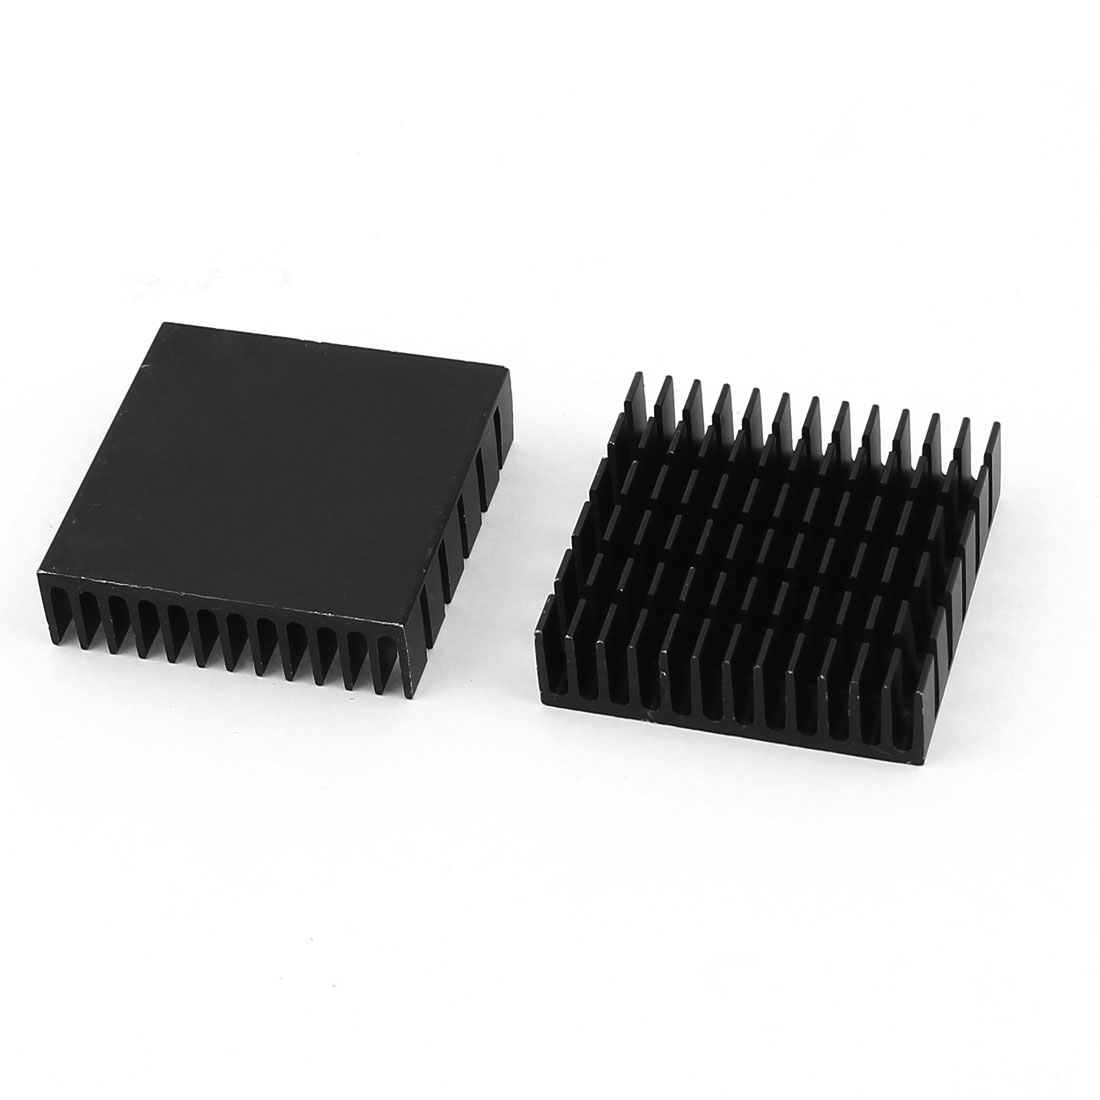 2 Pieces Black Aluminum Heat Sink Cooling Fin Cooler 40mmx40mmx11mm Replacements